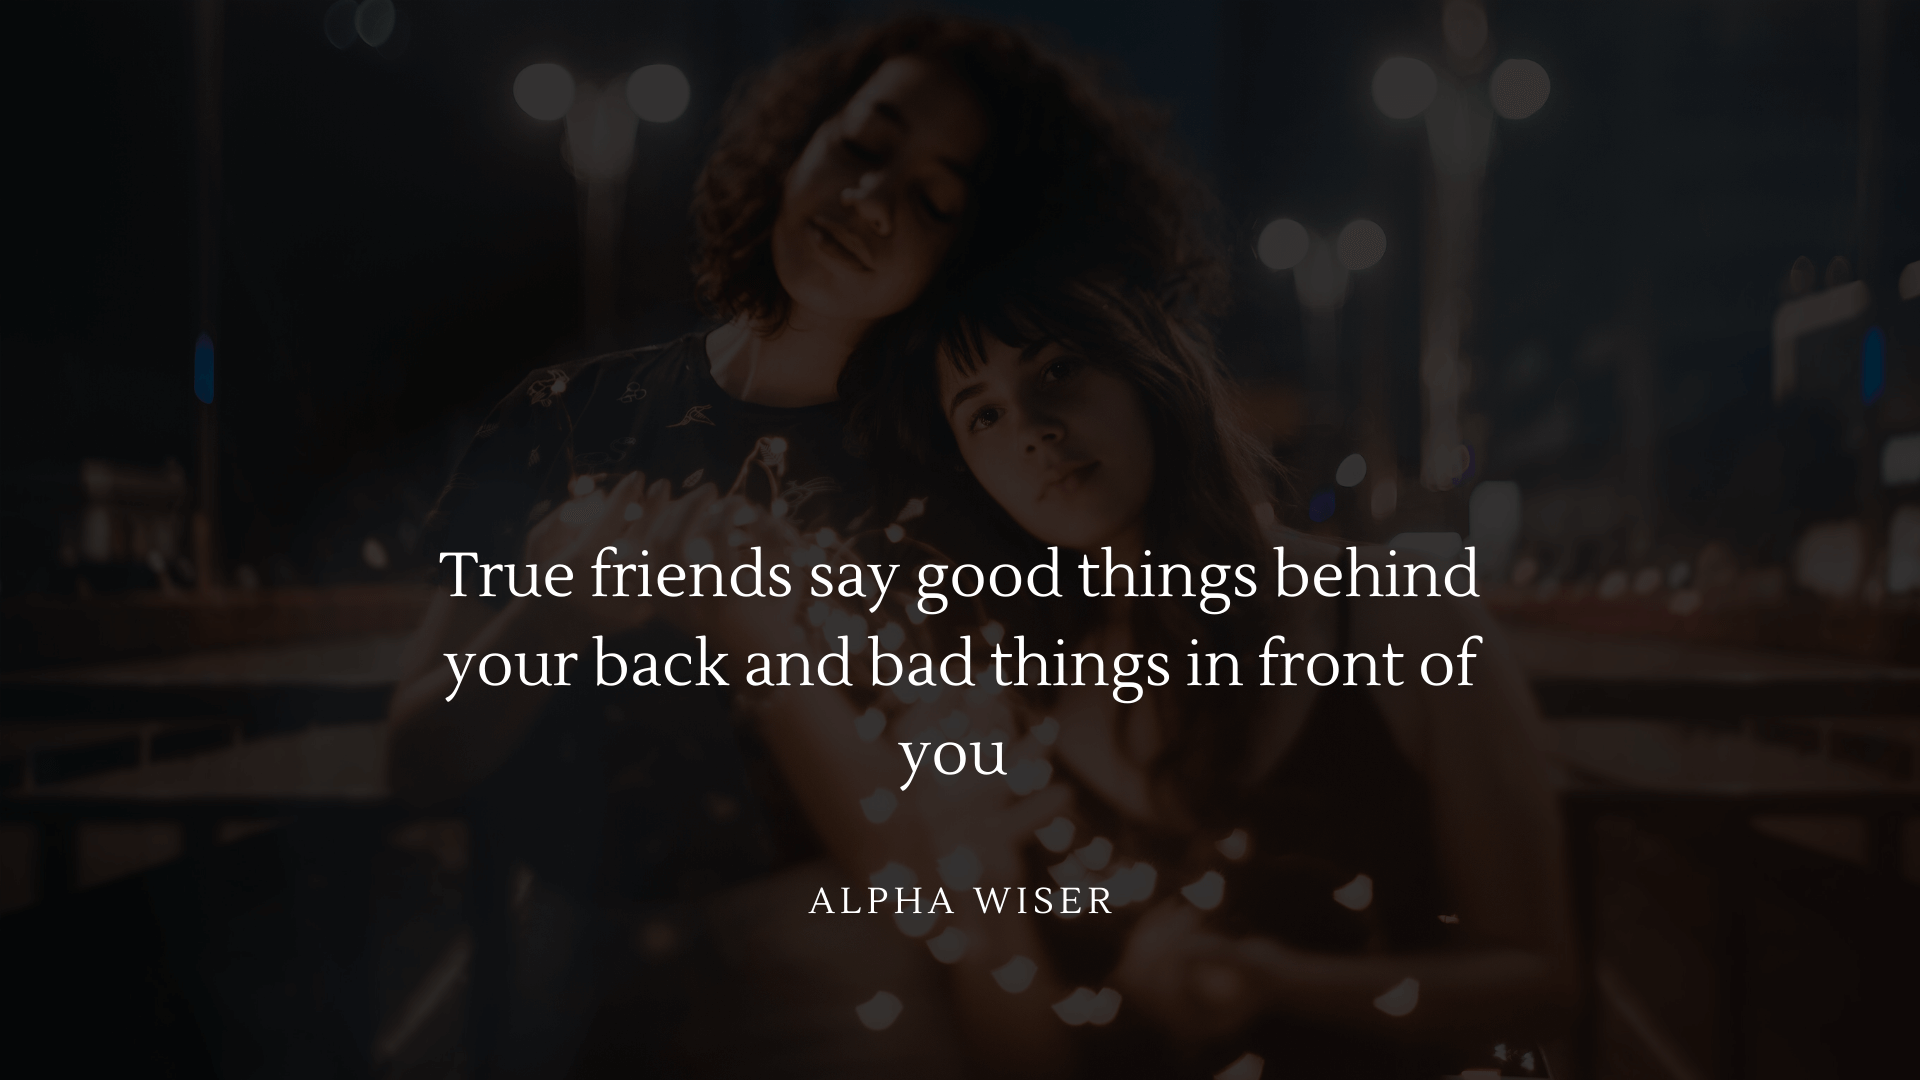 True friends say good things behind your back and bad things in front of you (2)